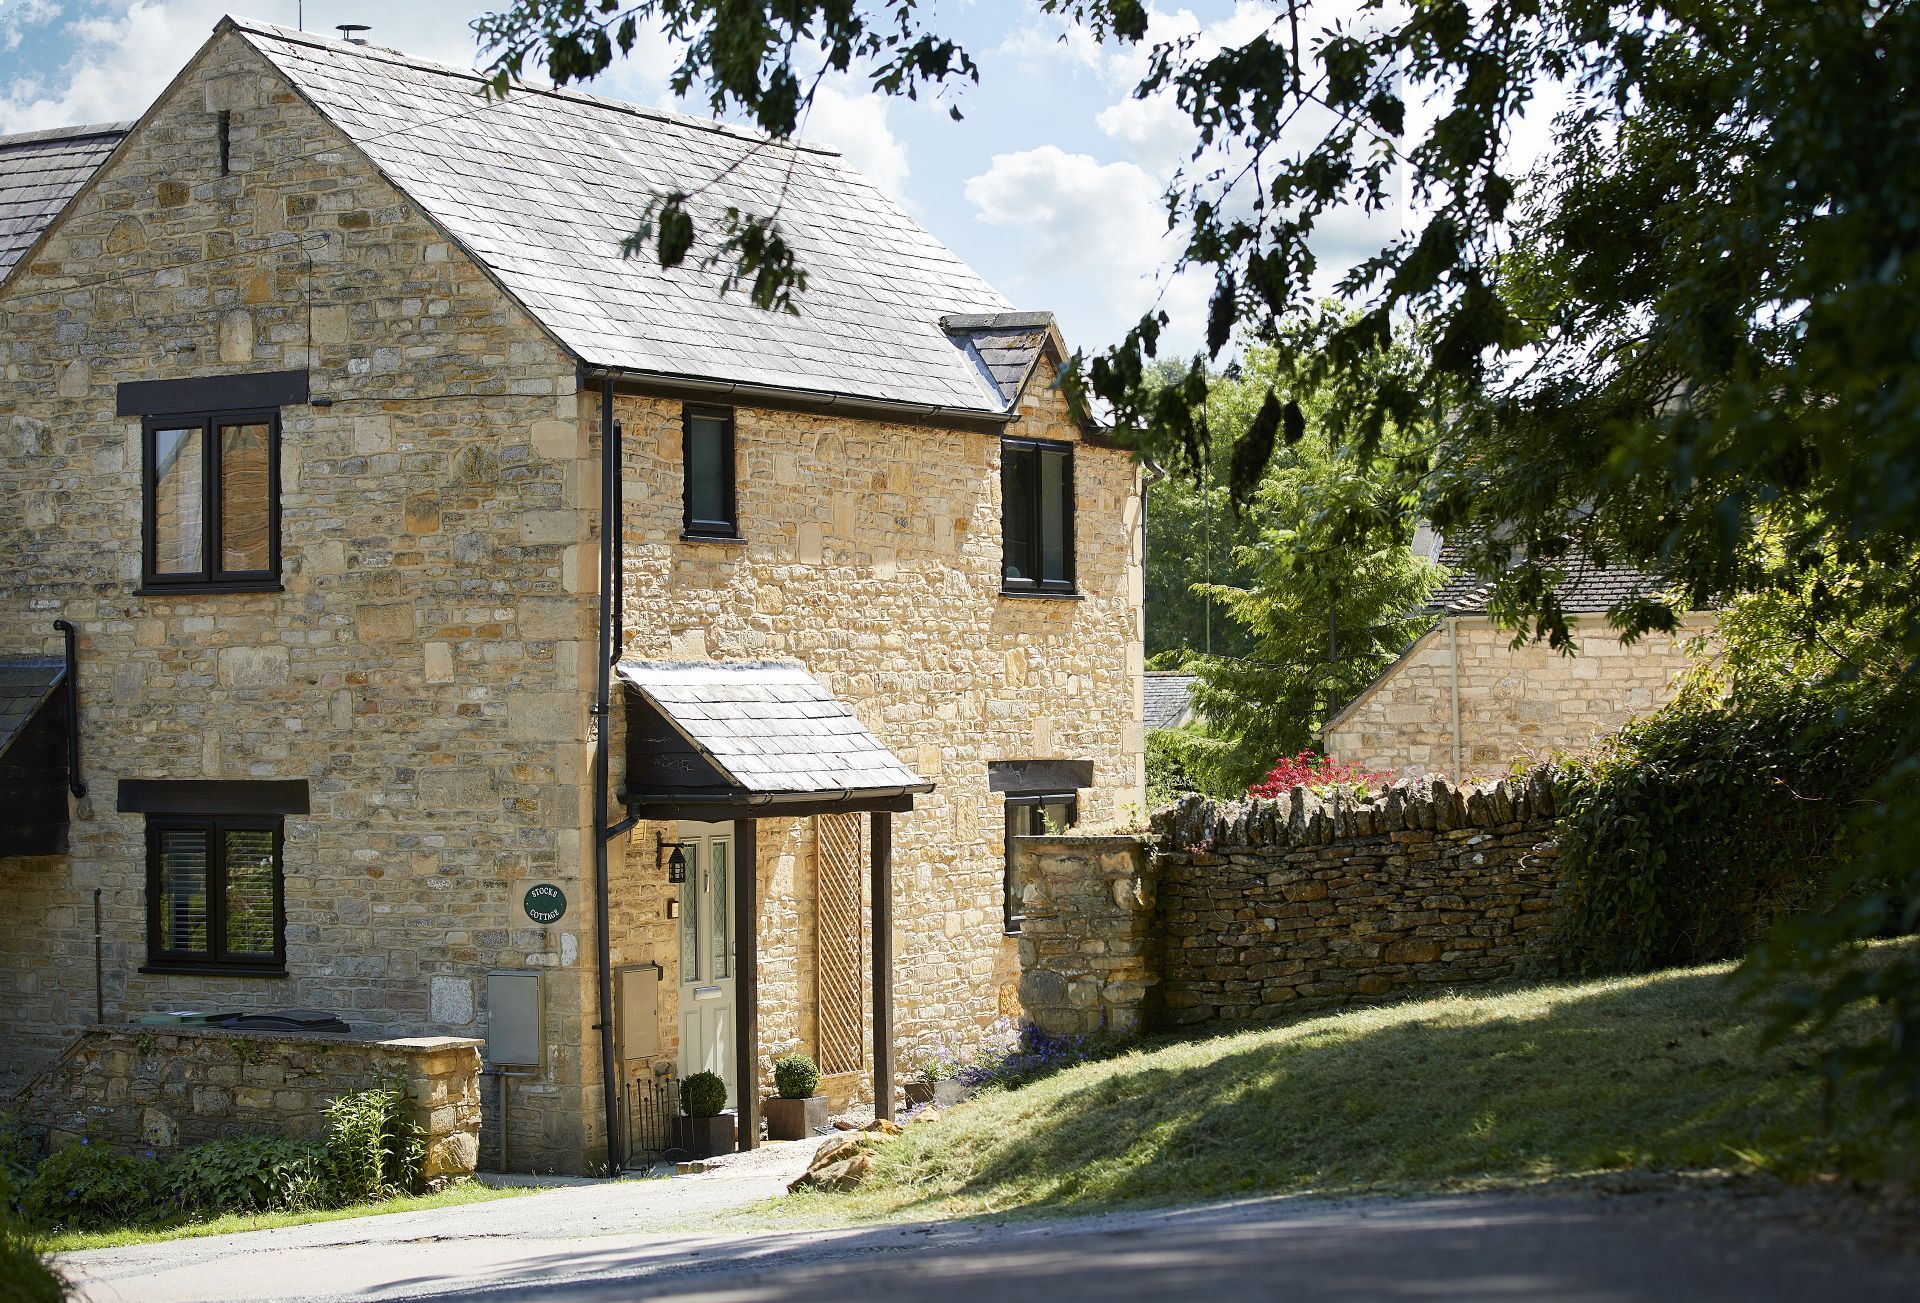 This delightful cottage takes its name from the old village stocks which are positioned close by to the property